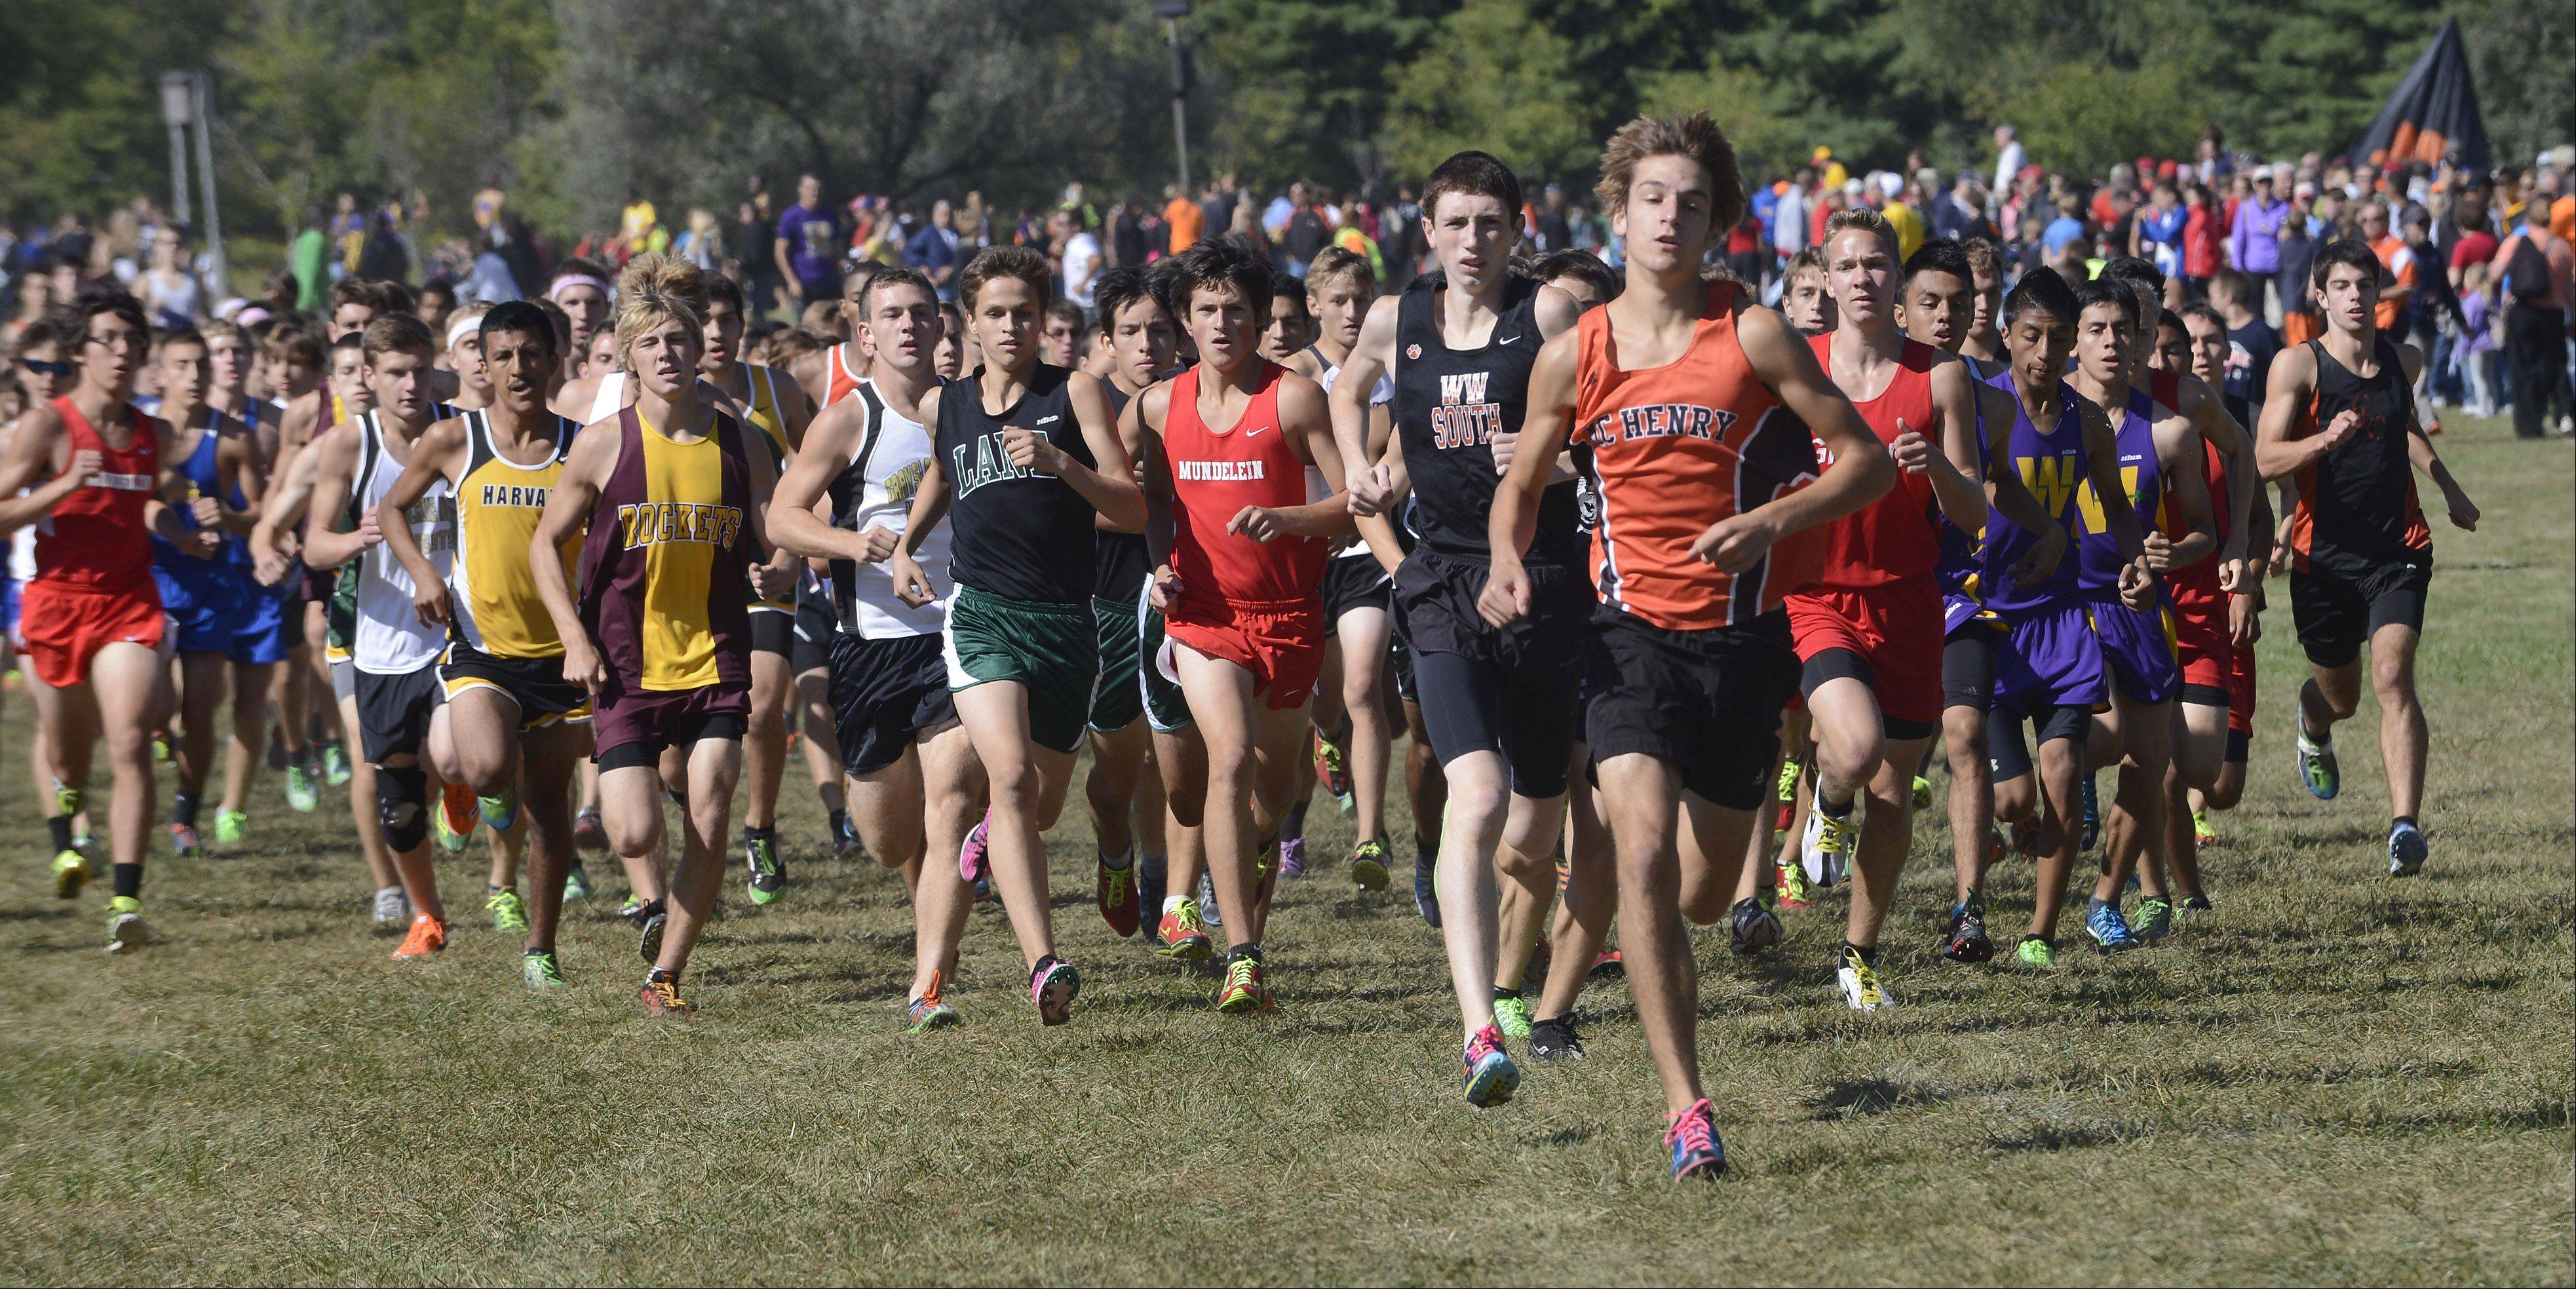 McHenry's Jesse Reiser, who went on to finish first individually, leads the pack just after the start of the boys race during the Wauconda cross country invitational at Lakewood Forest Preserve on Saturday.